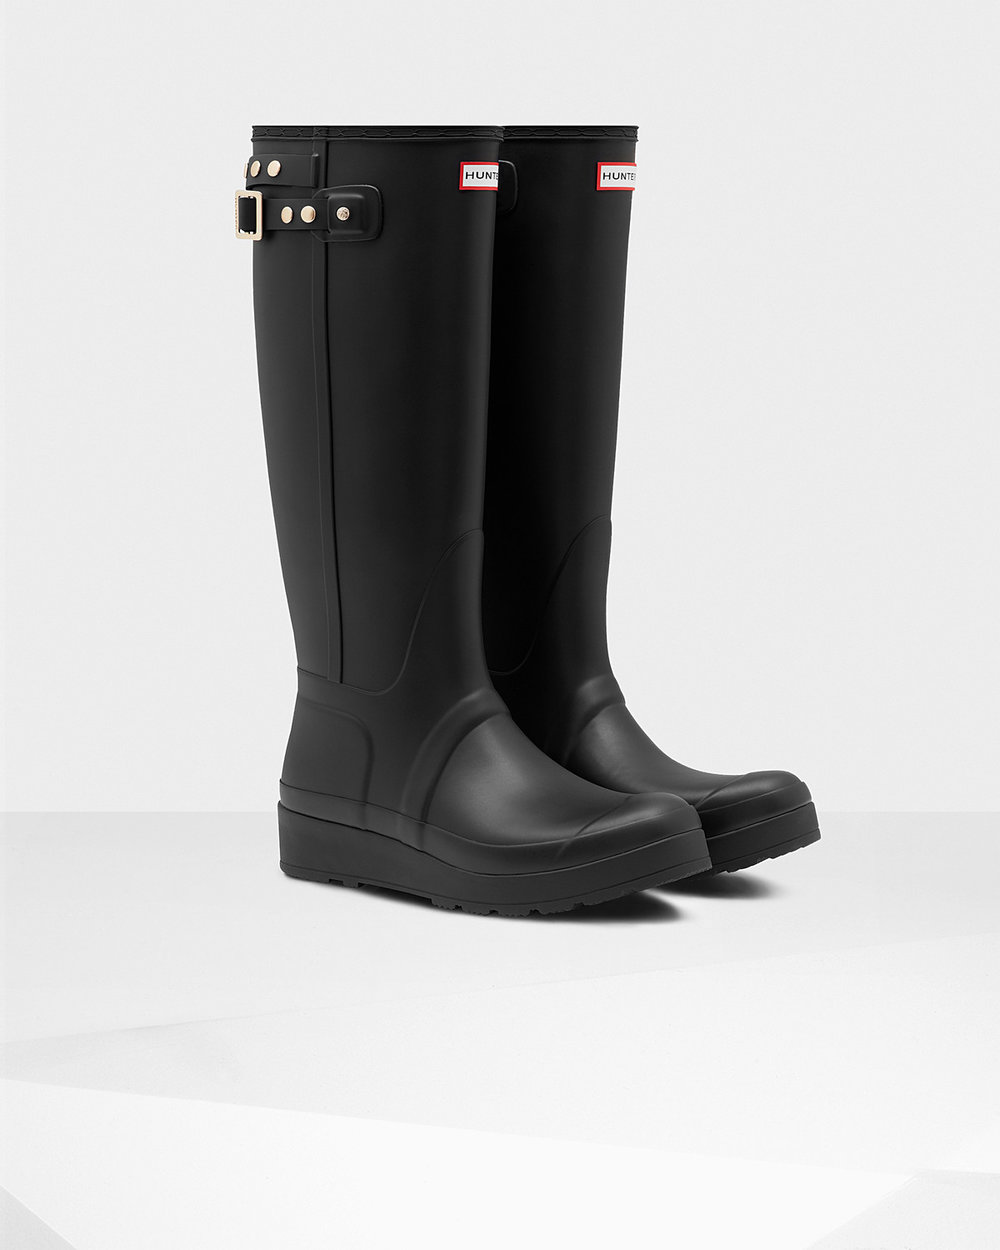 Original Tall Wedge Stud Wellies by Hunter £120.00